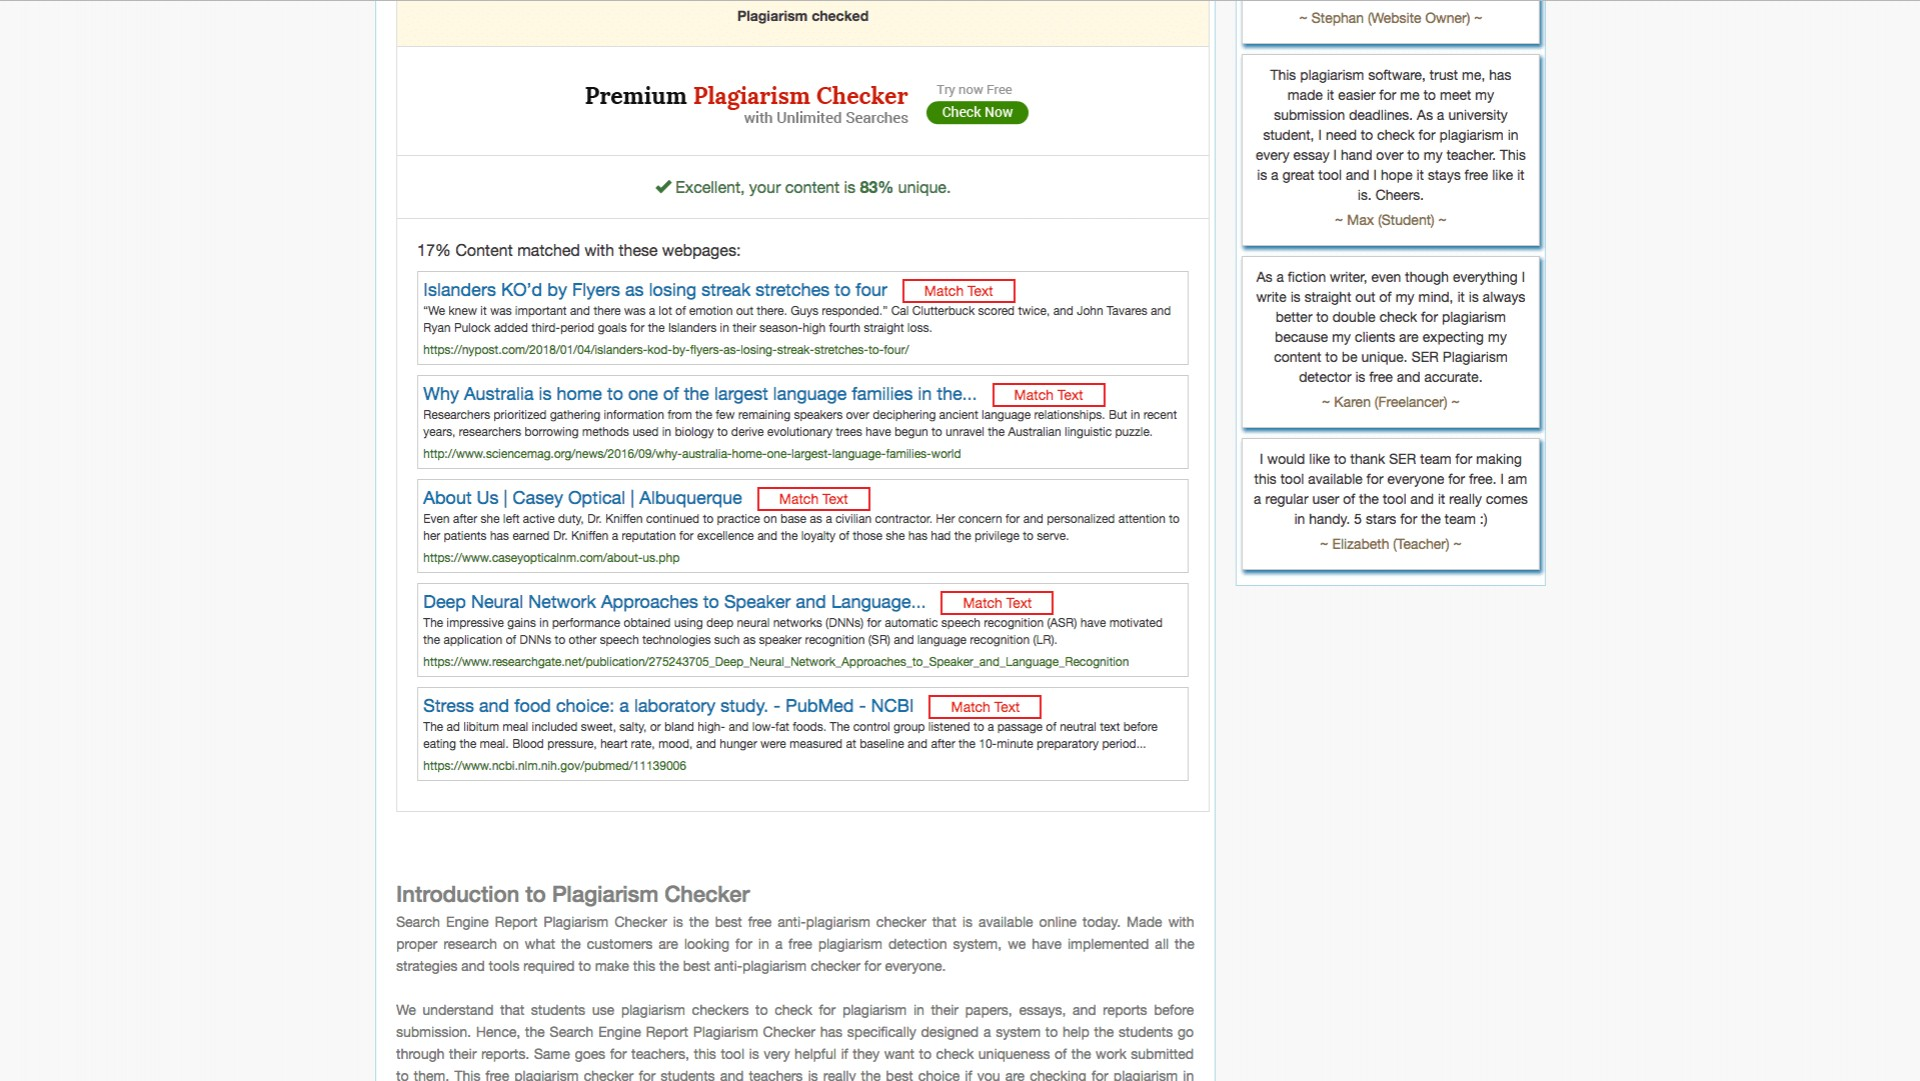 005 Research Paper Searchenginereports Check Plagiarism Of Online Exceptional Free How To A Checker For Papers 1920